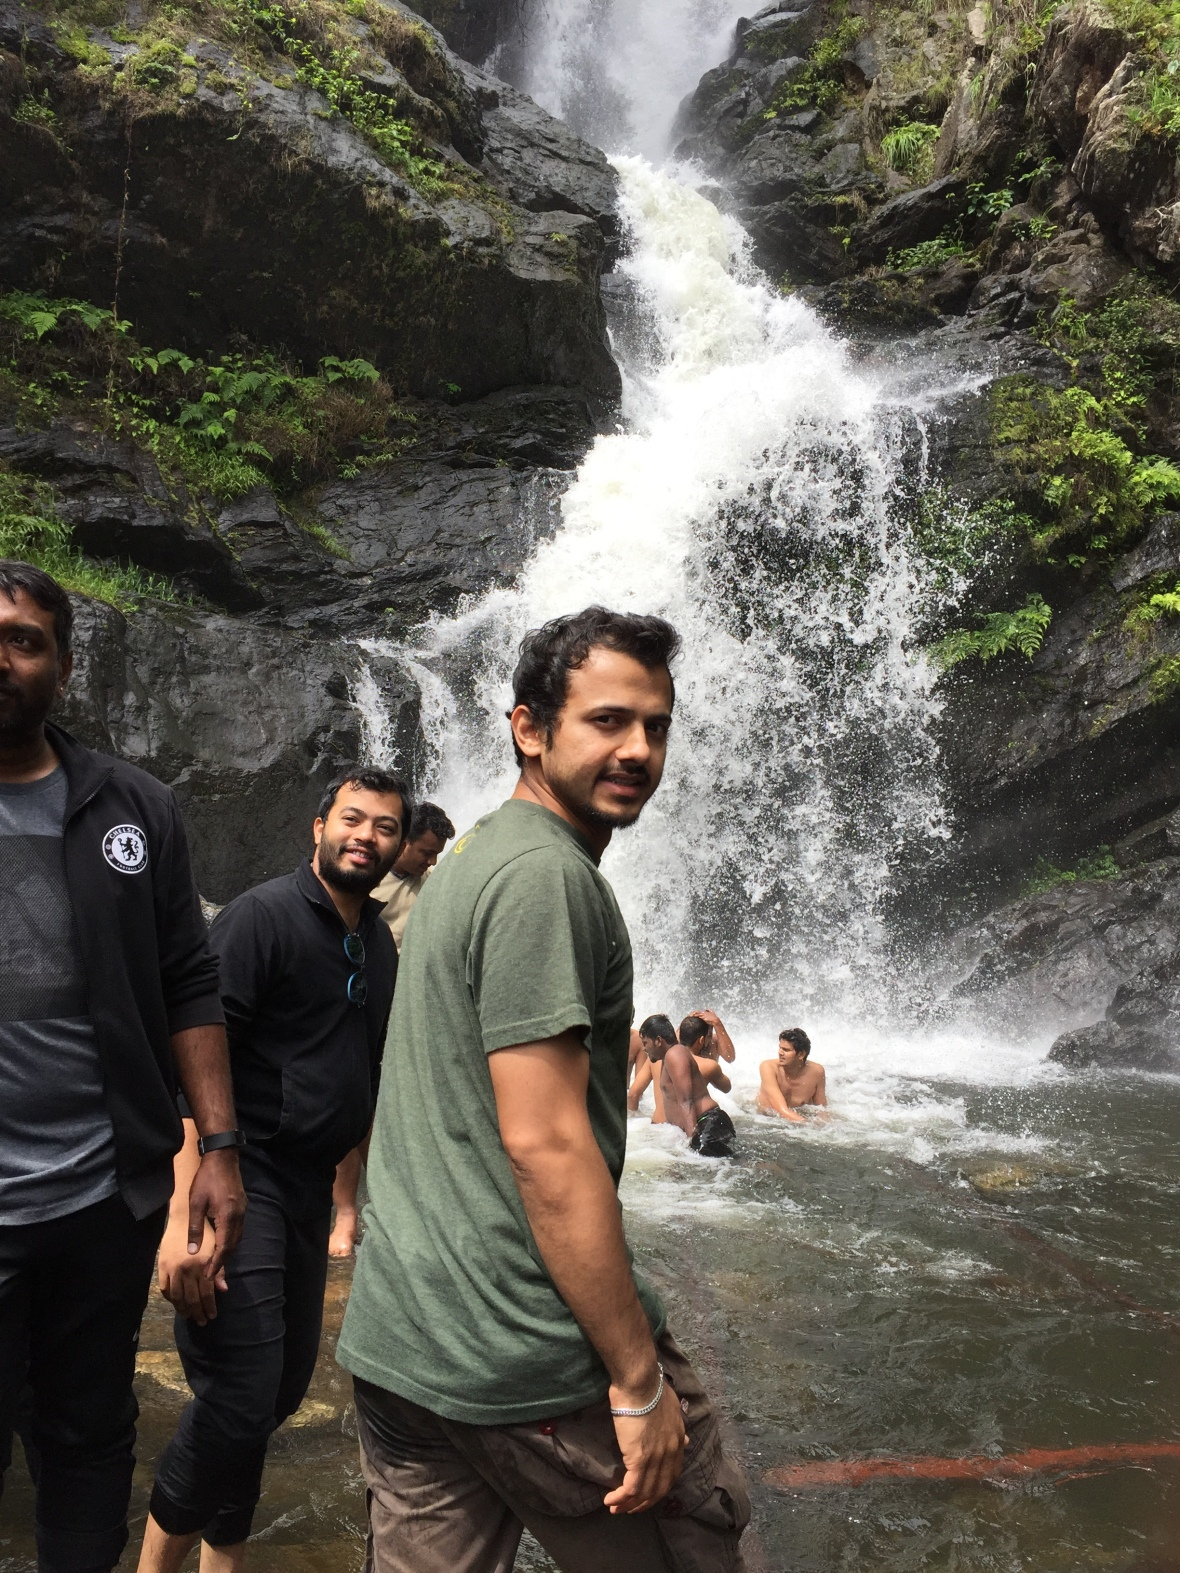 At Irpu waterfall